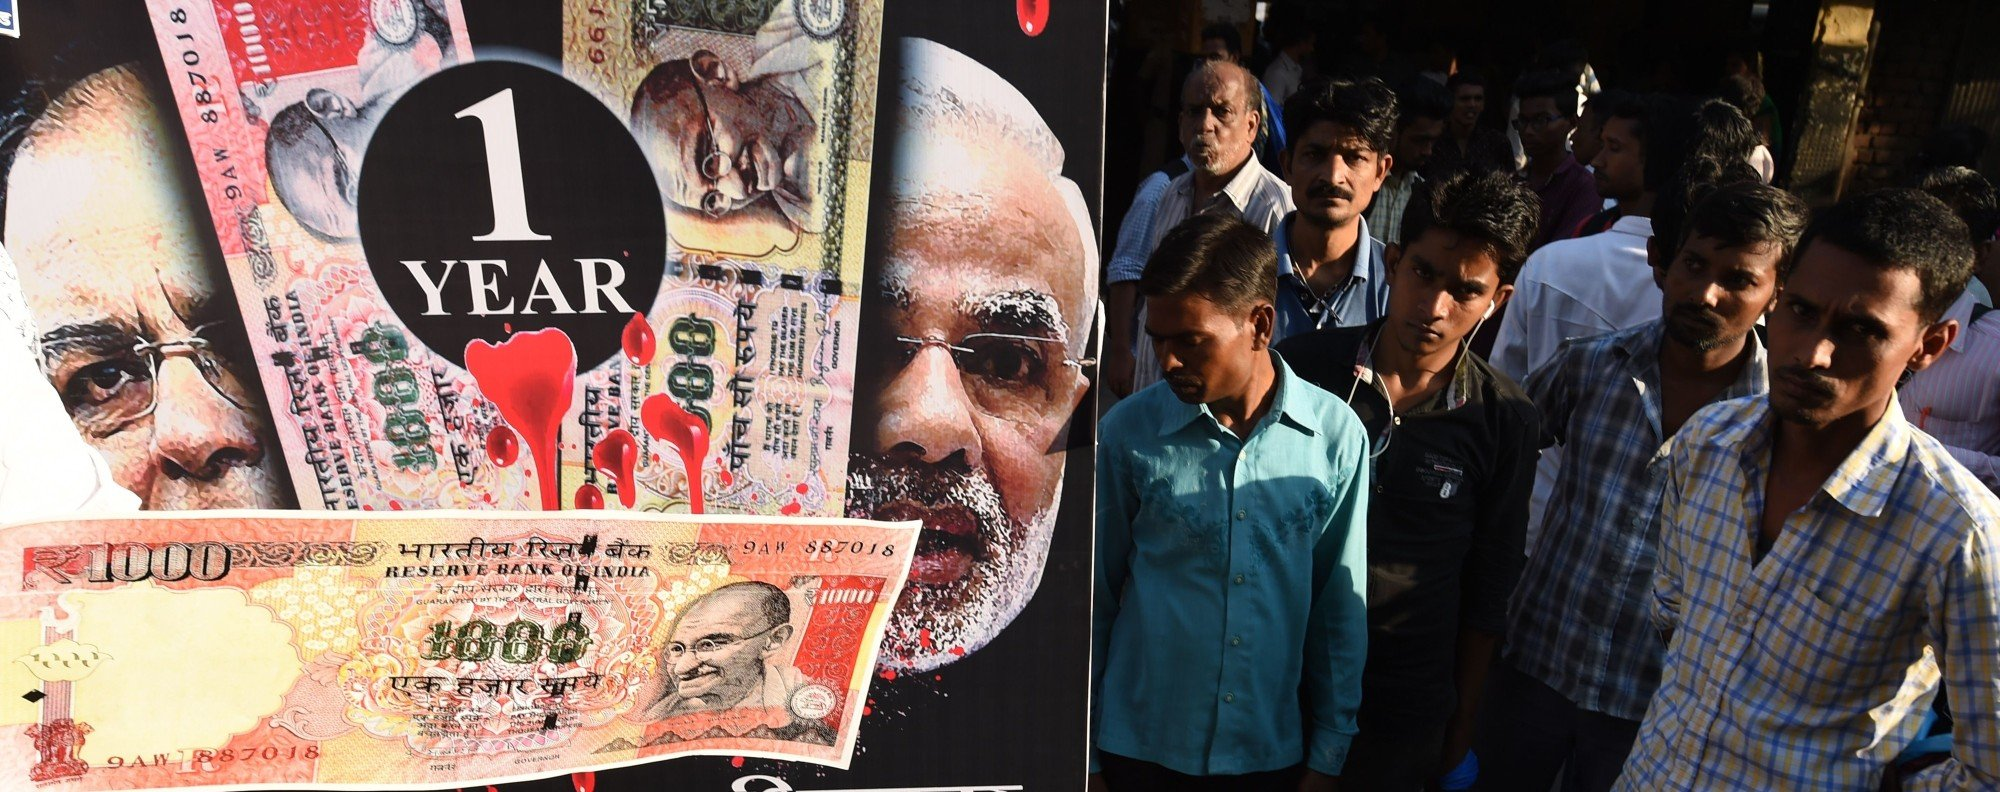 It's been one year since Modi's note ban. Photo: AFP